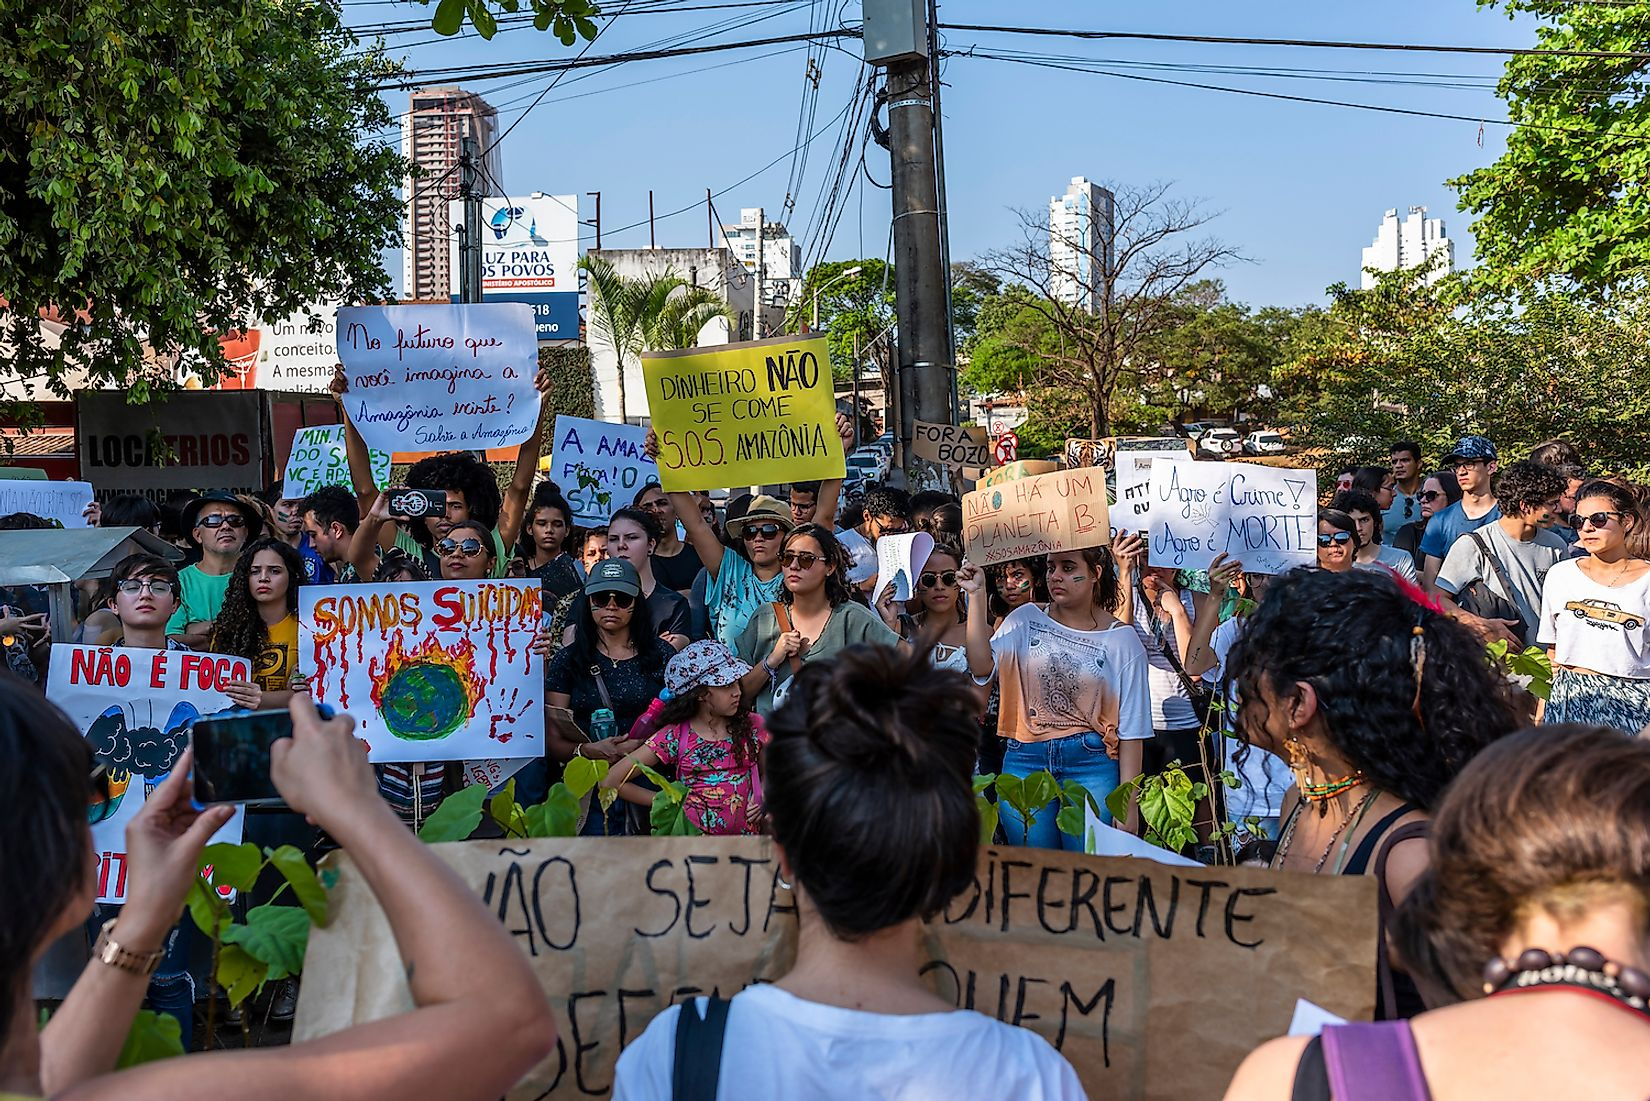 A crowd holds up the posters written in Portuguese language to protest to protect Amazon forest in Goiania, Goias/Brazil. Image credit: Hpoliveira/Shutterstock.com